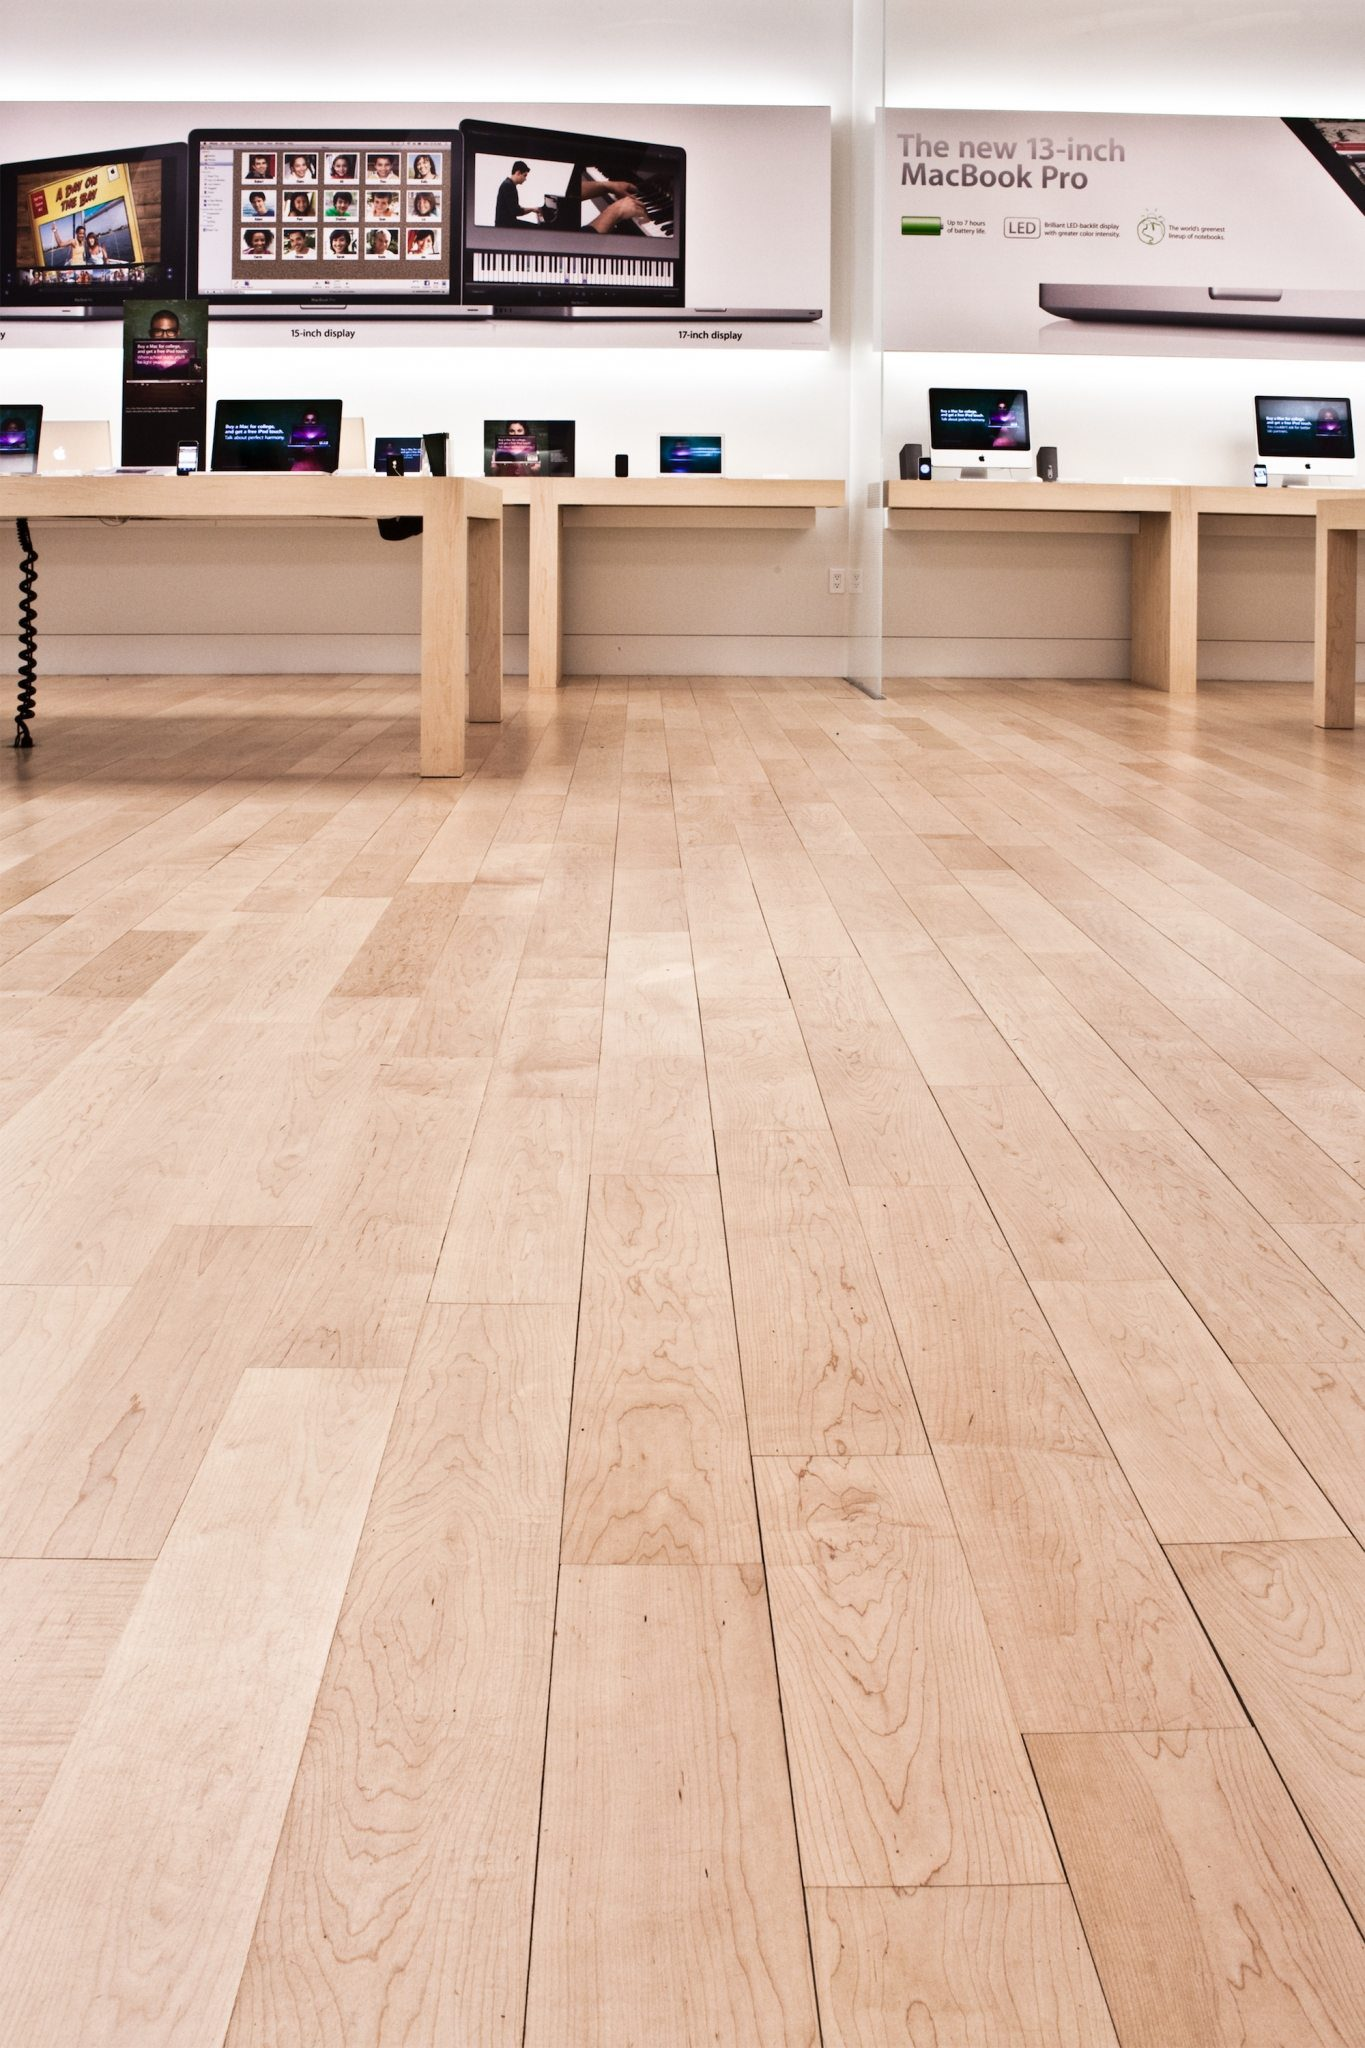 White Maple Flooring in a Retail Space